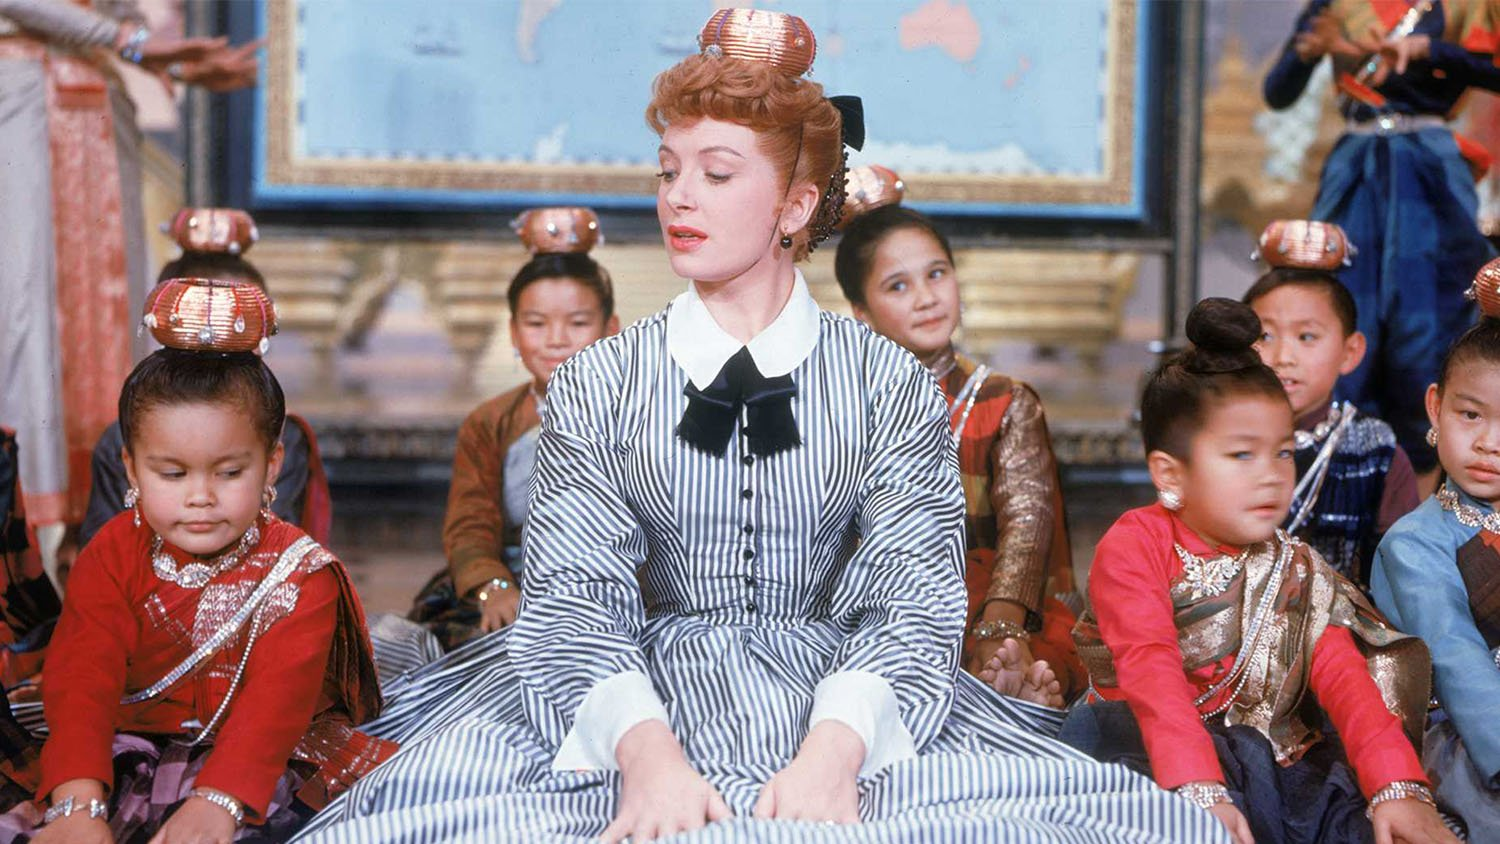 Deborah Kerr singing getting to know you in the film musical 'The King and I'